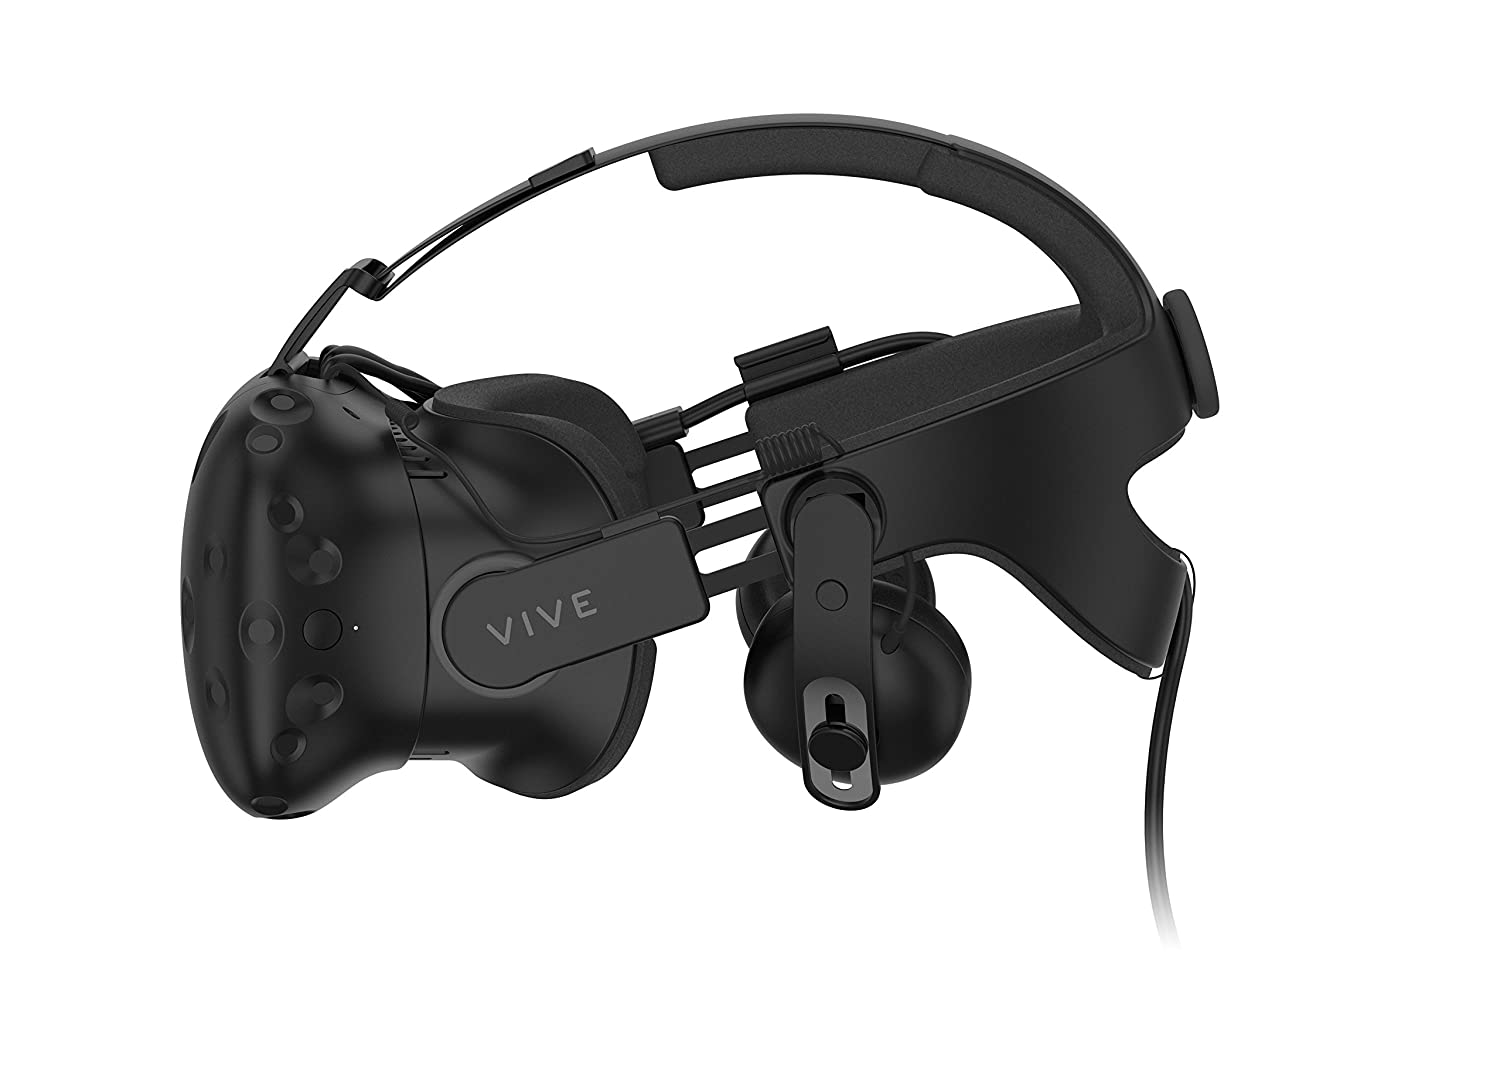 c6a268f6dd41 Buy HTC VIVE BUSINESS EDITION - VIRTUAL REALITY SYSTEM Online at Low Prices  in India